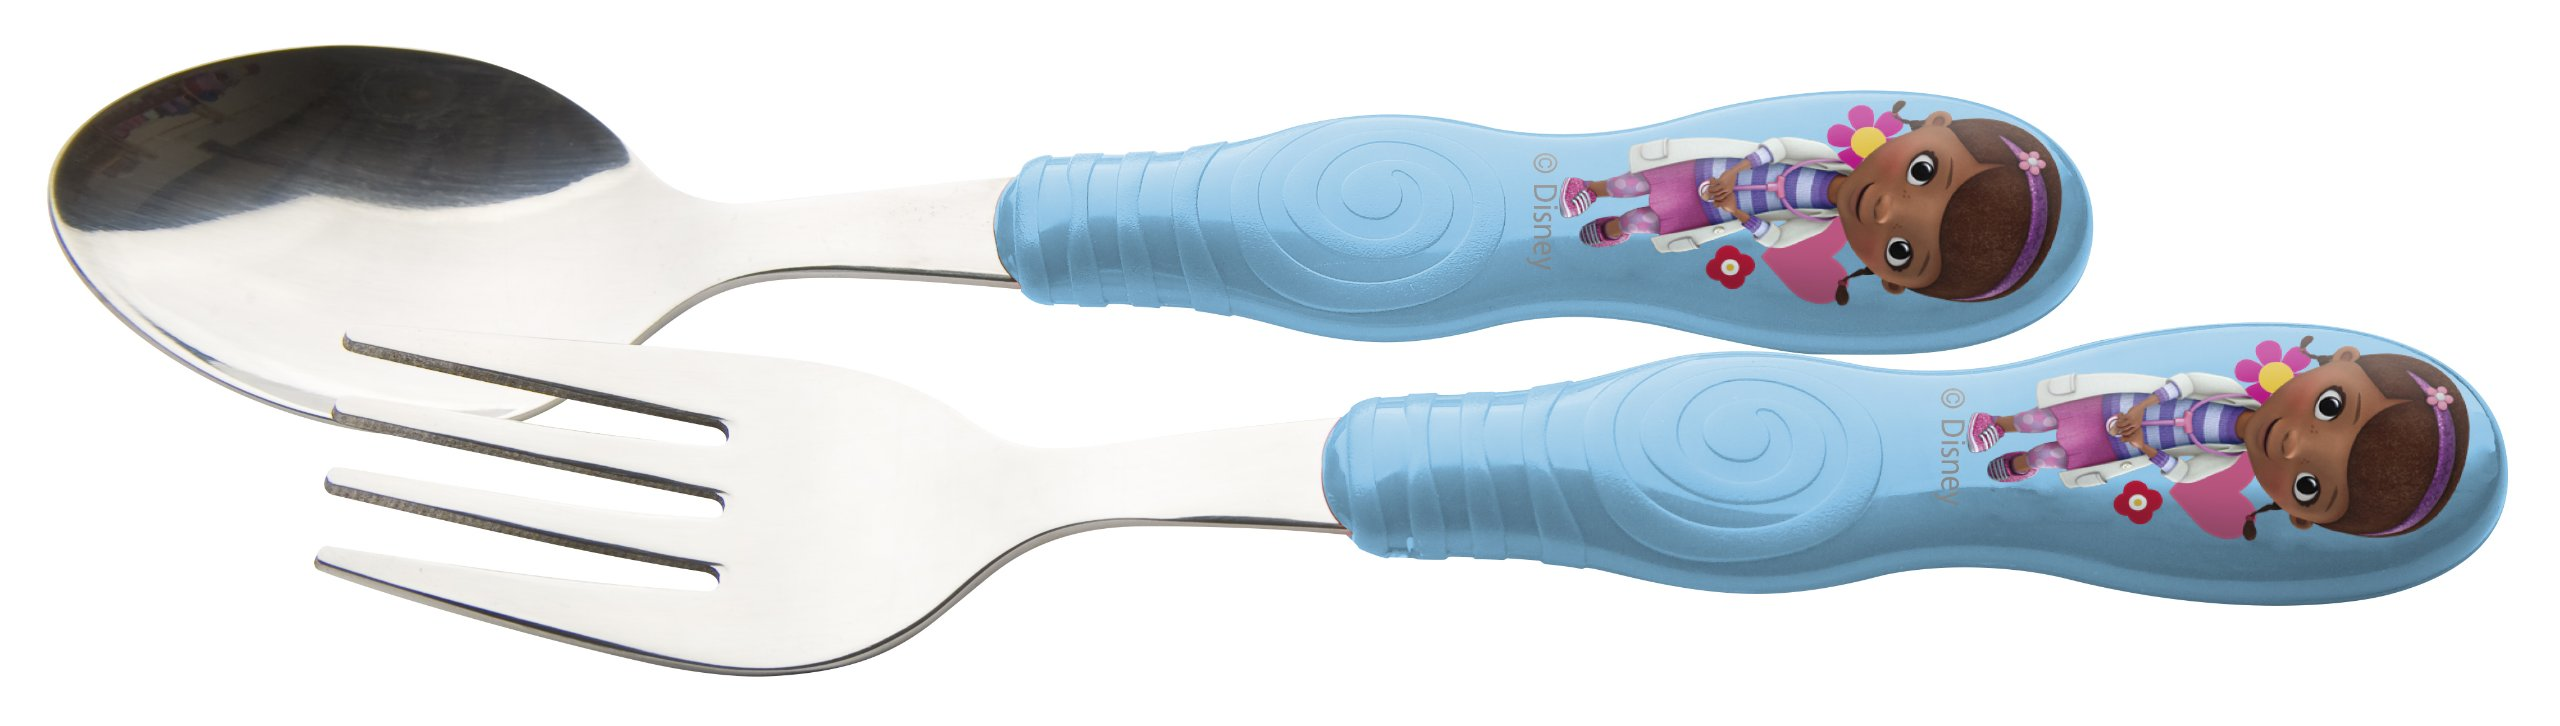 Zak! Designs Easy Grip Flatware, Children's Spoon and Fork with Doc McStuffins, BPA-free Plastic and Stainless Steel